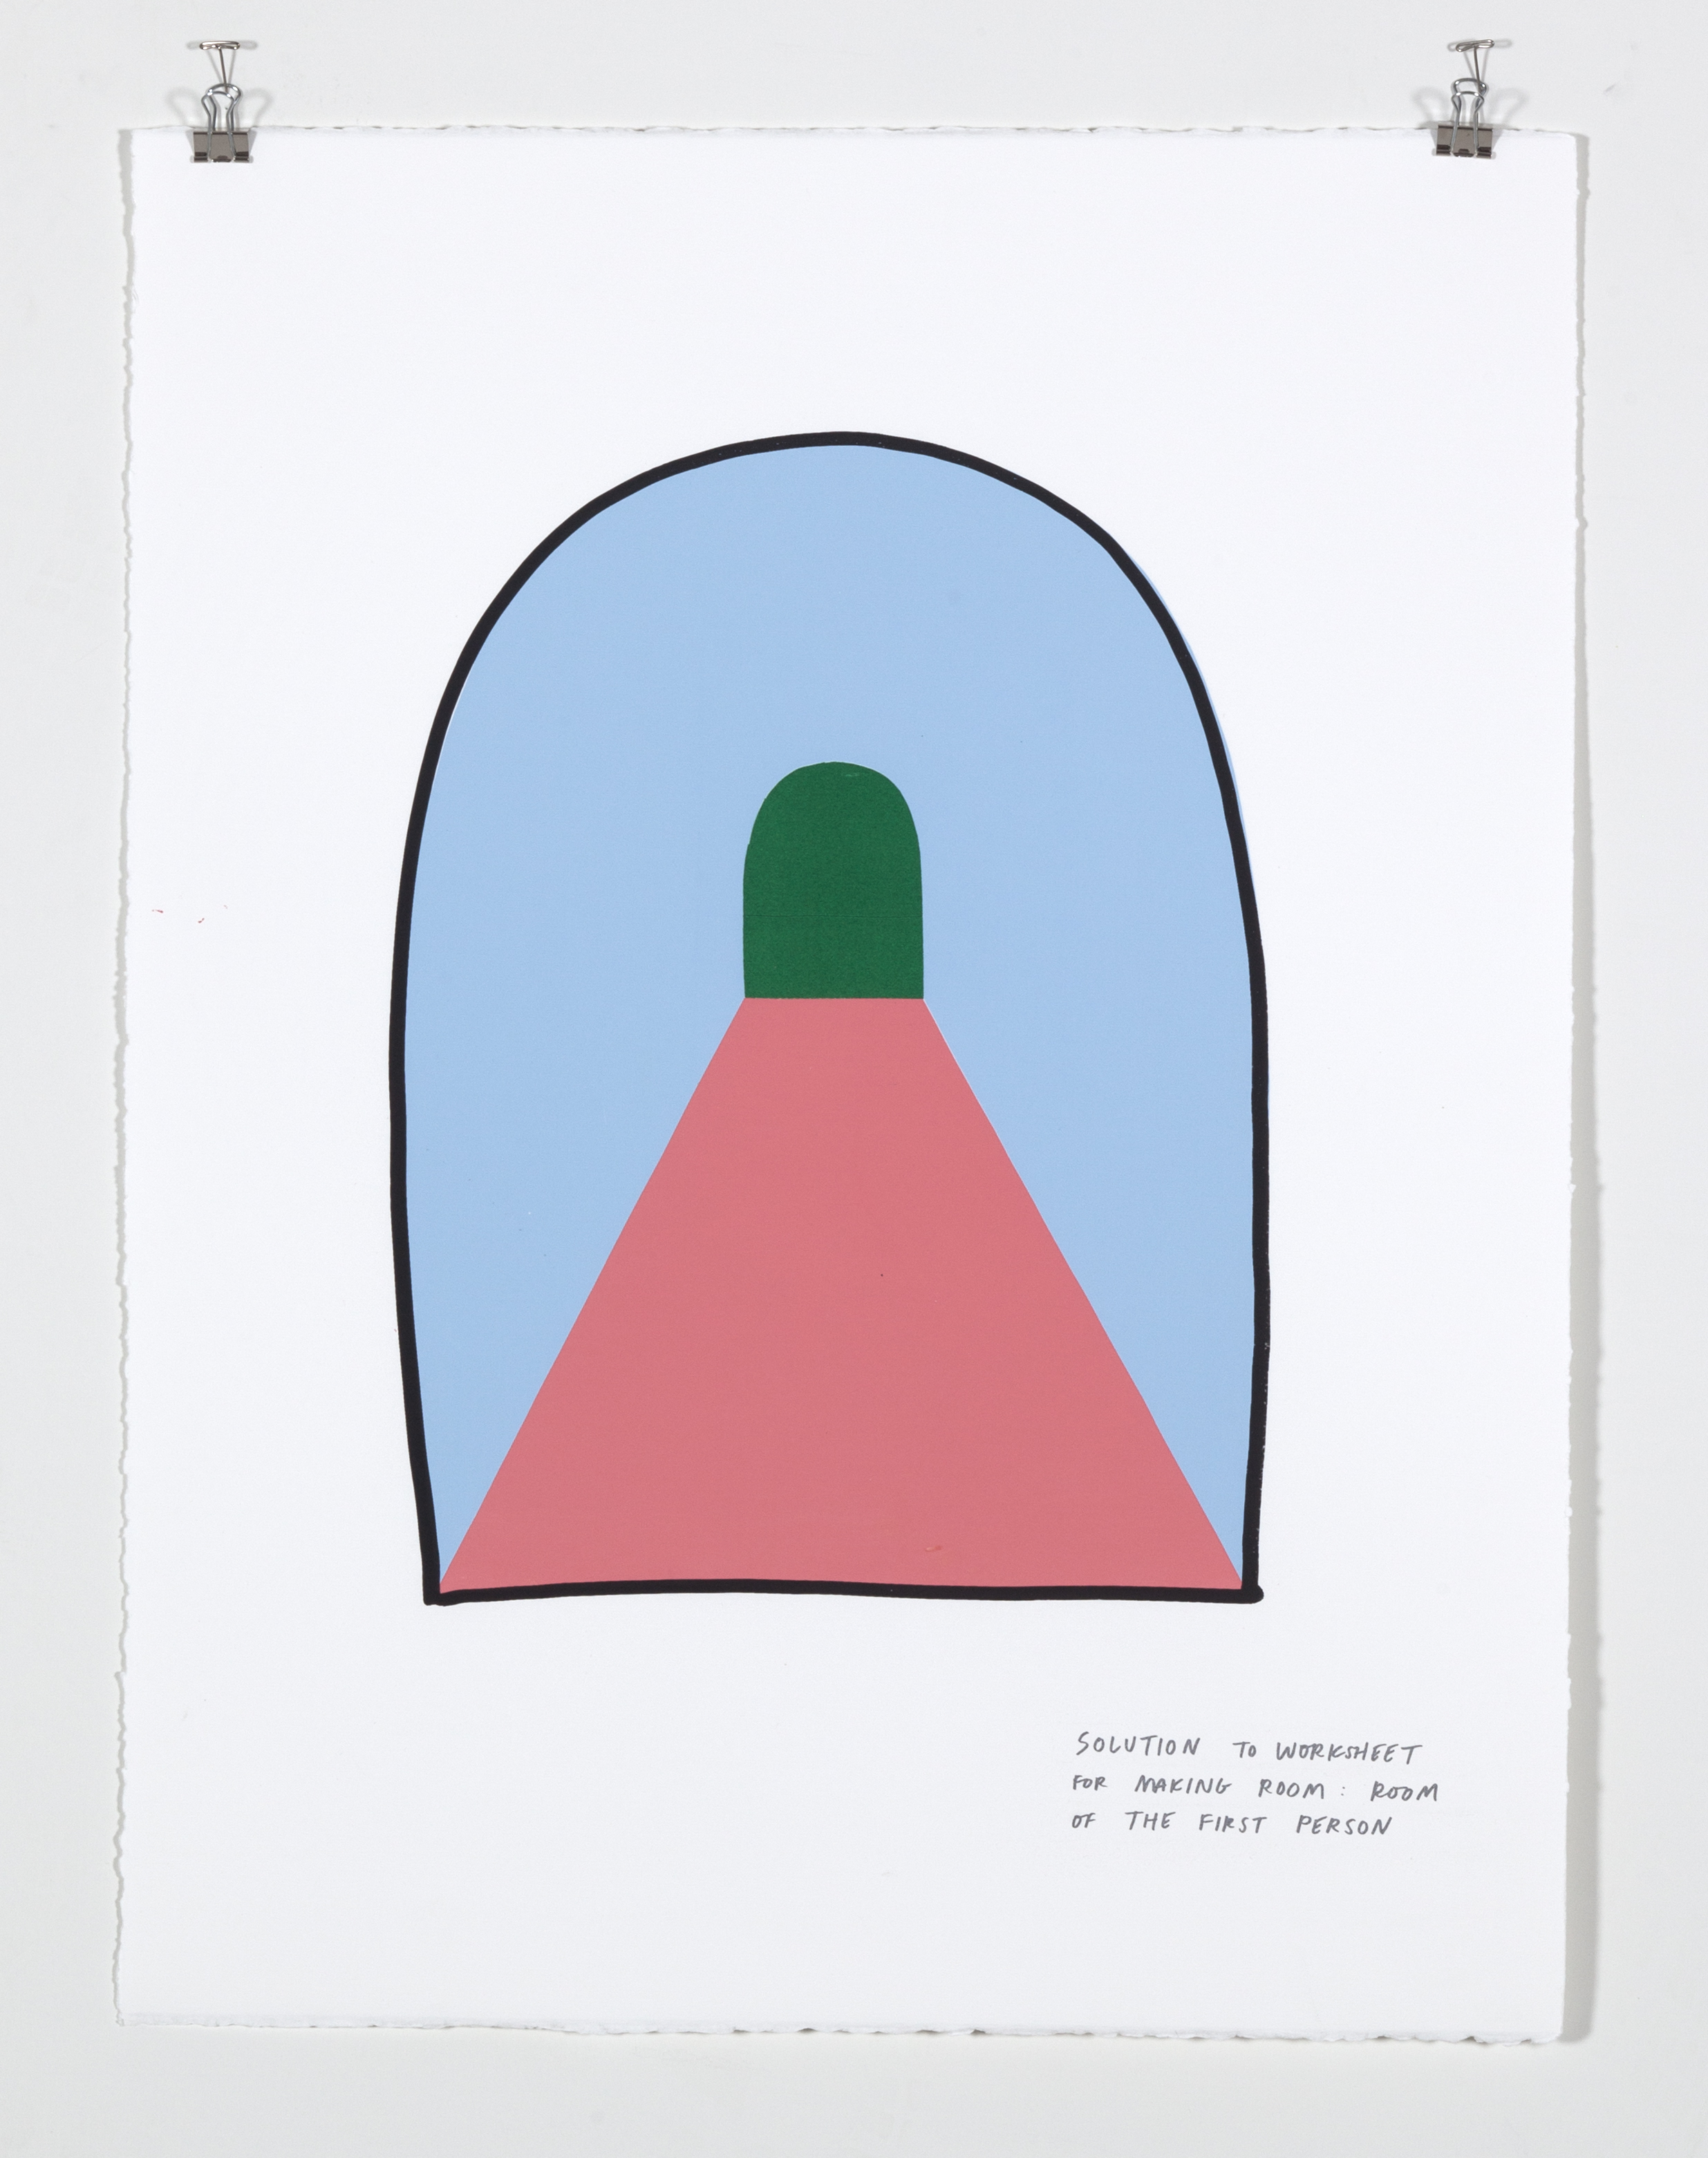 Solution to Worksheet for Making Room: Room of the First Person,  2018  Five color silkscreen print on paper 19 7/8 x 25 7/8 inches